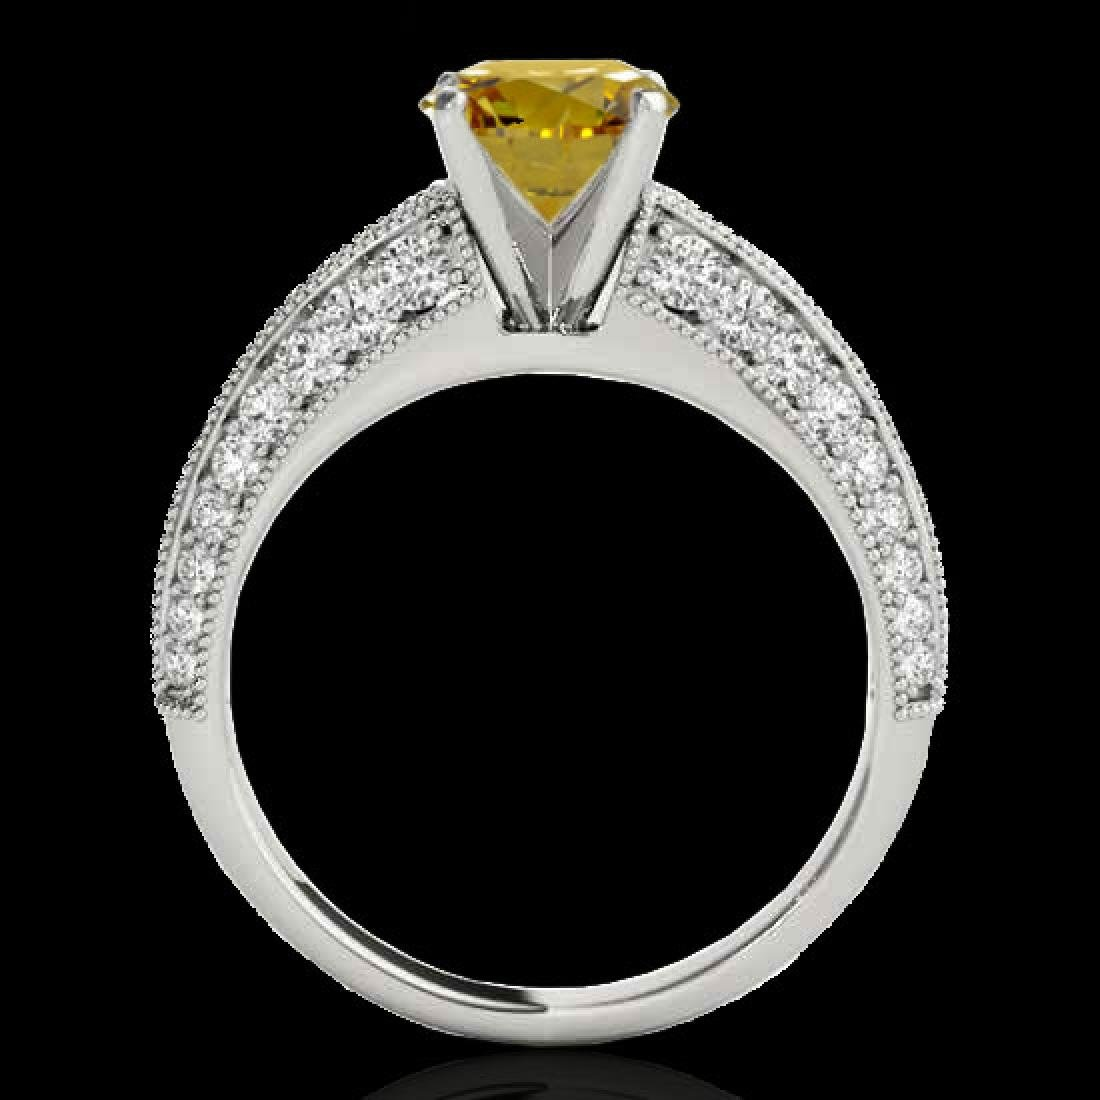 1.58 CTW Certified Si Intense Yellow Diamond Solitaire - 2